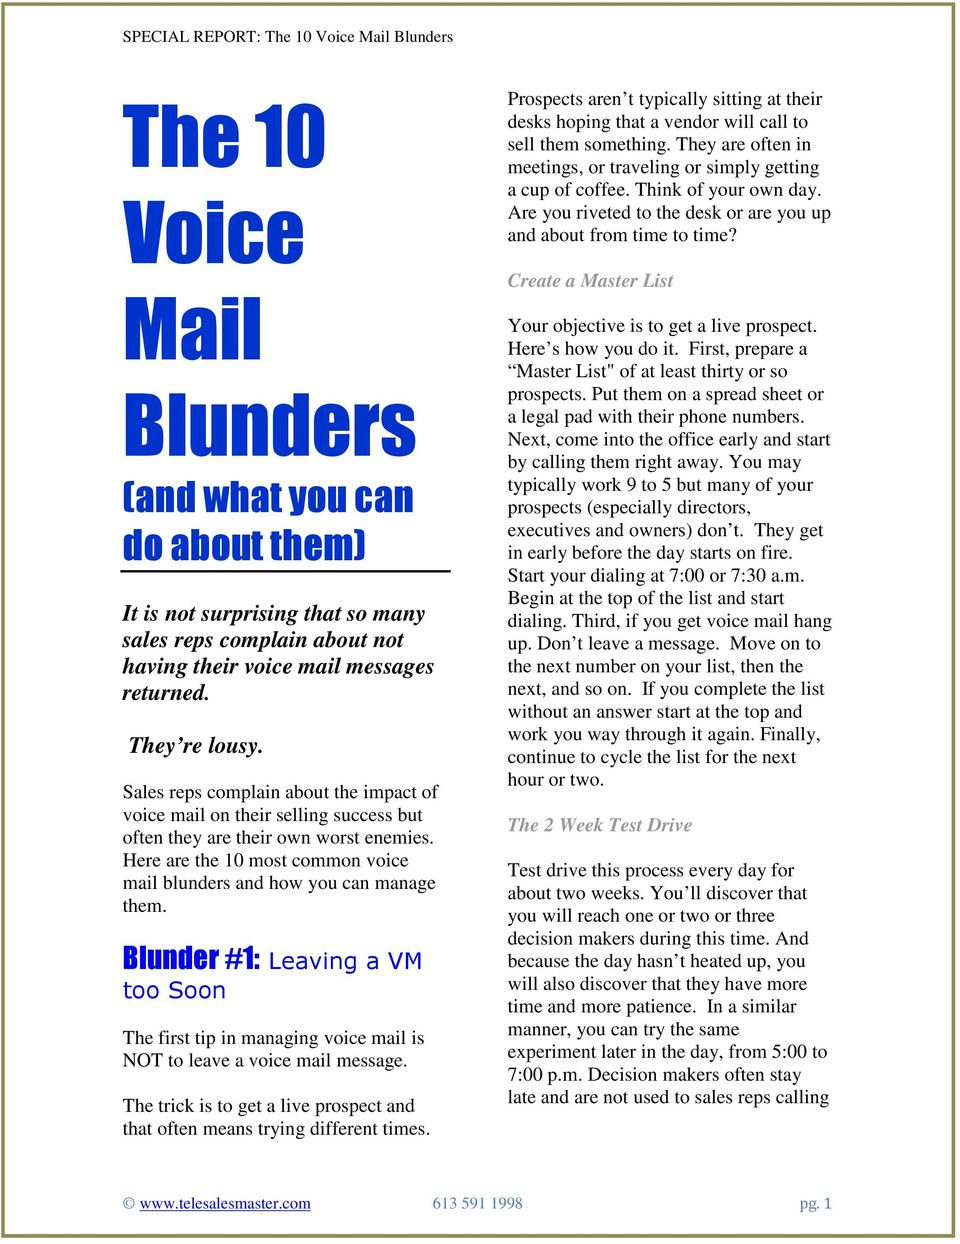 Blunder #1: Leaving a VM too Soon The first tip in managing voice mail is NOT to leave a voice mail message. The trick is to get a live prospect and that often means trying different times.